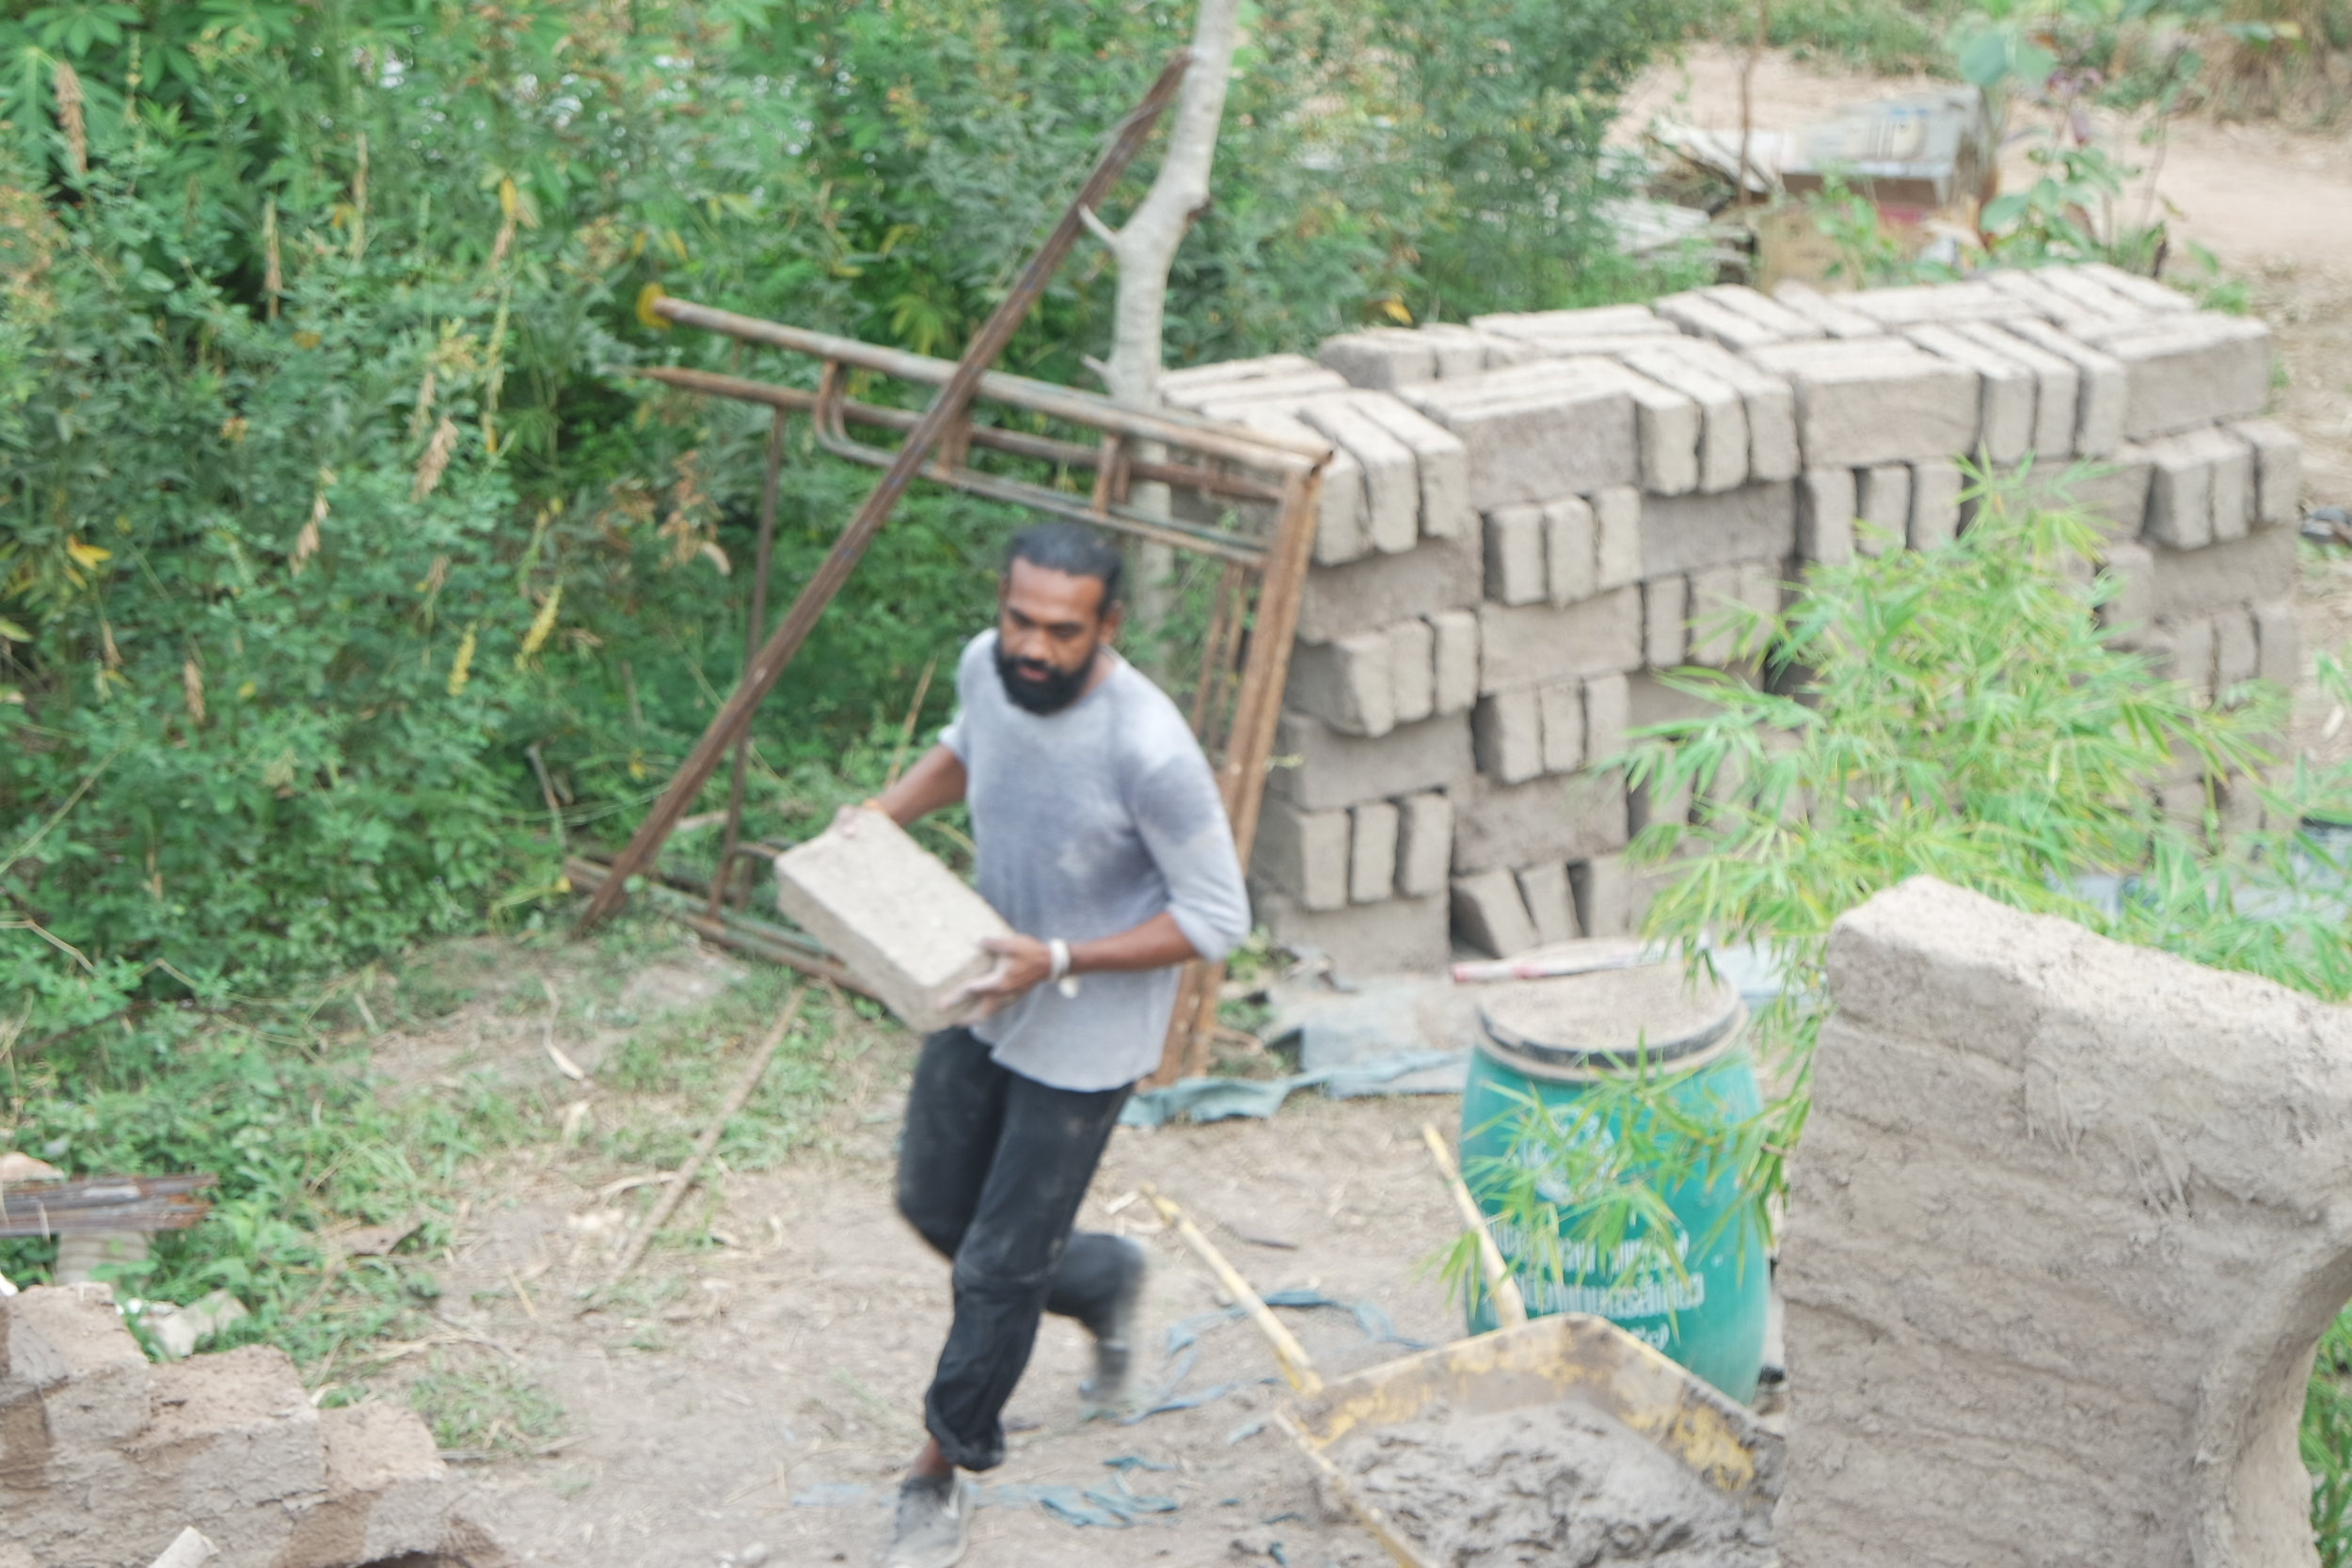 Taking turns and supporting people laying bricks with material is an important part of the work.